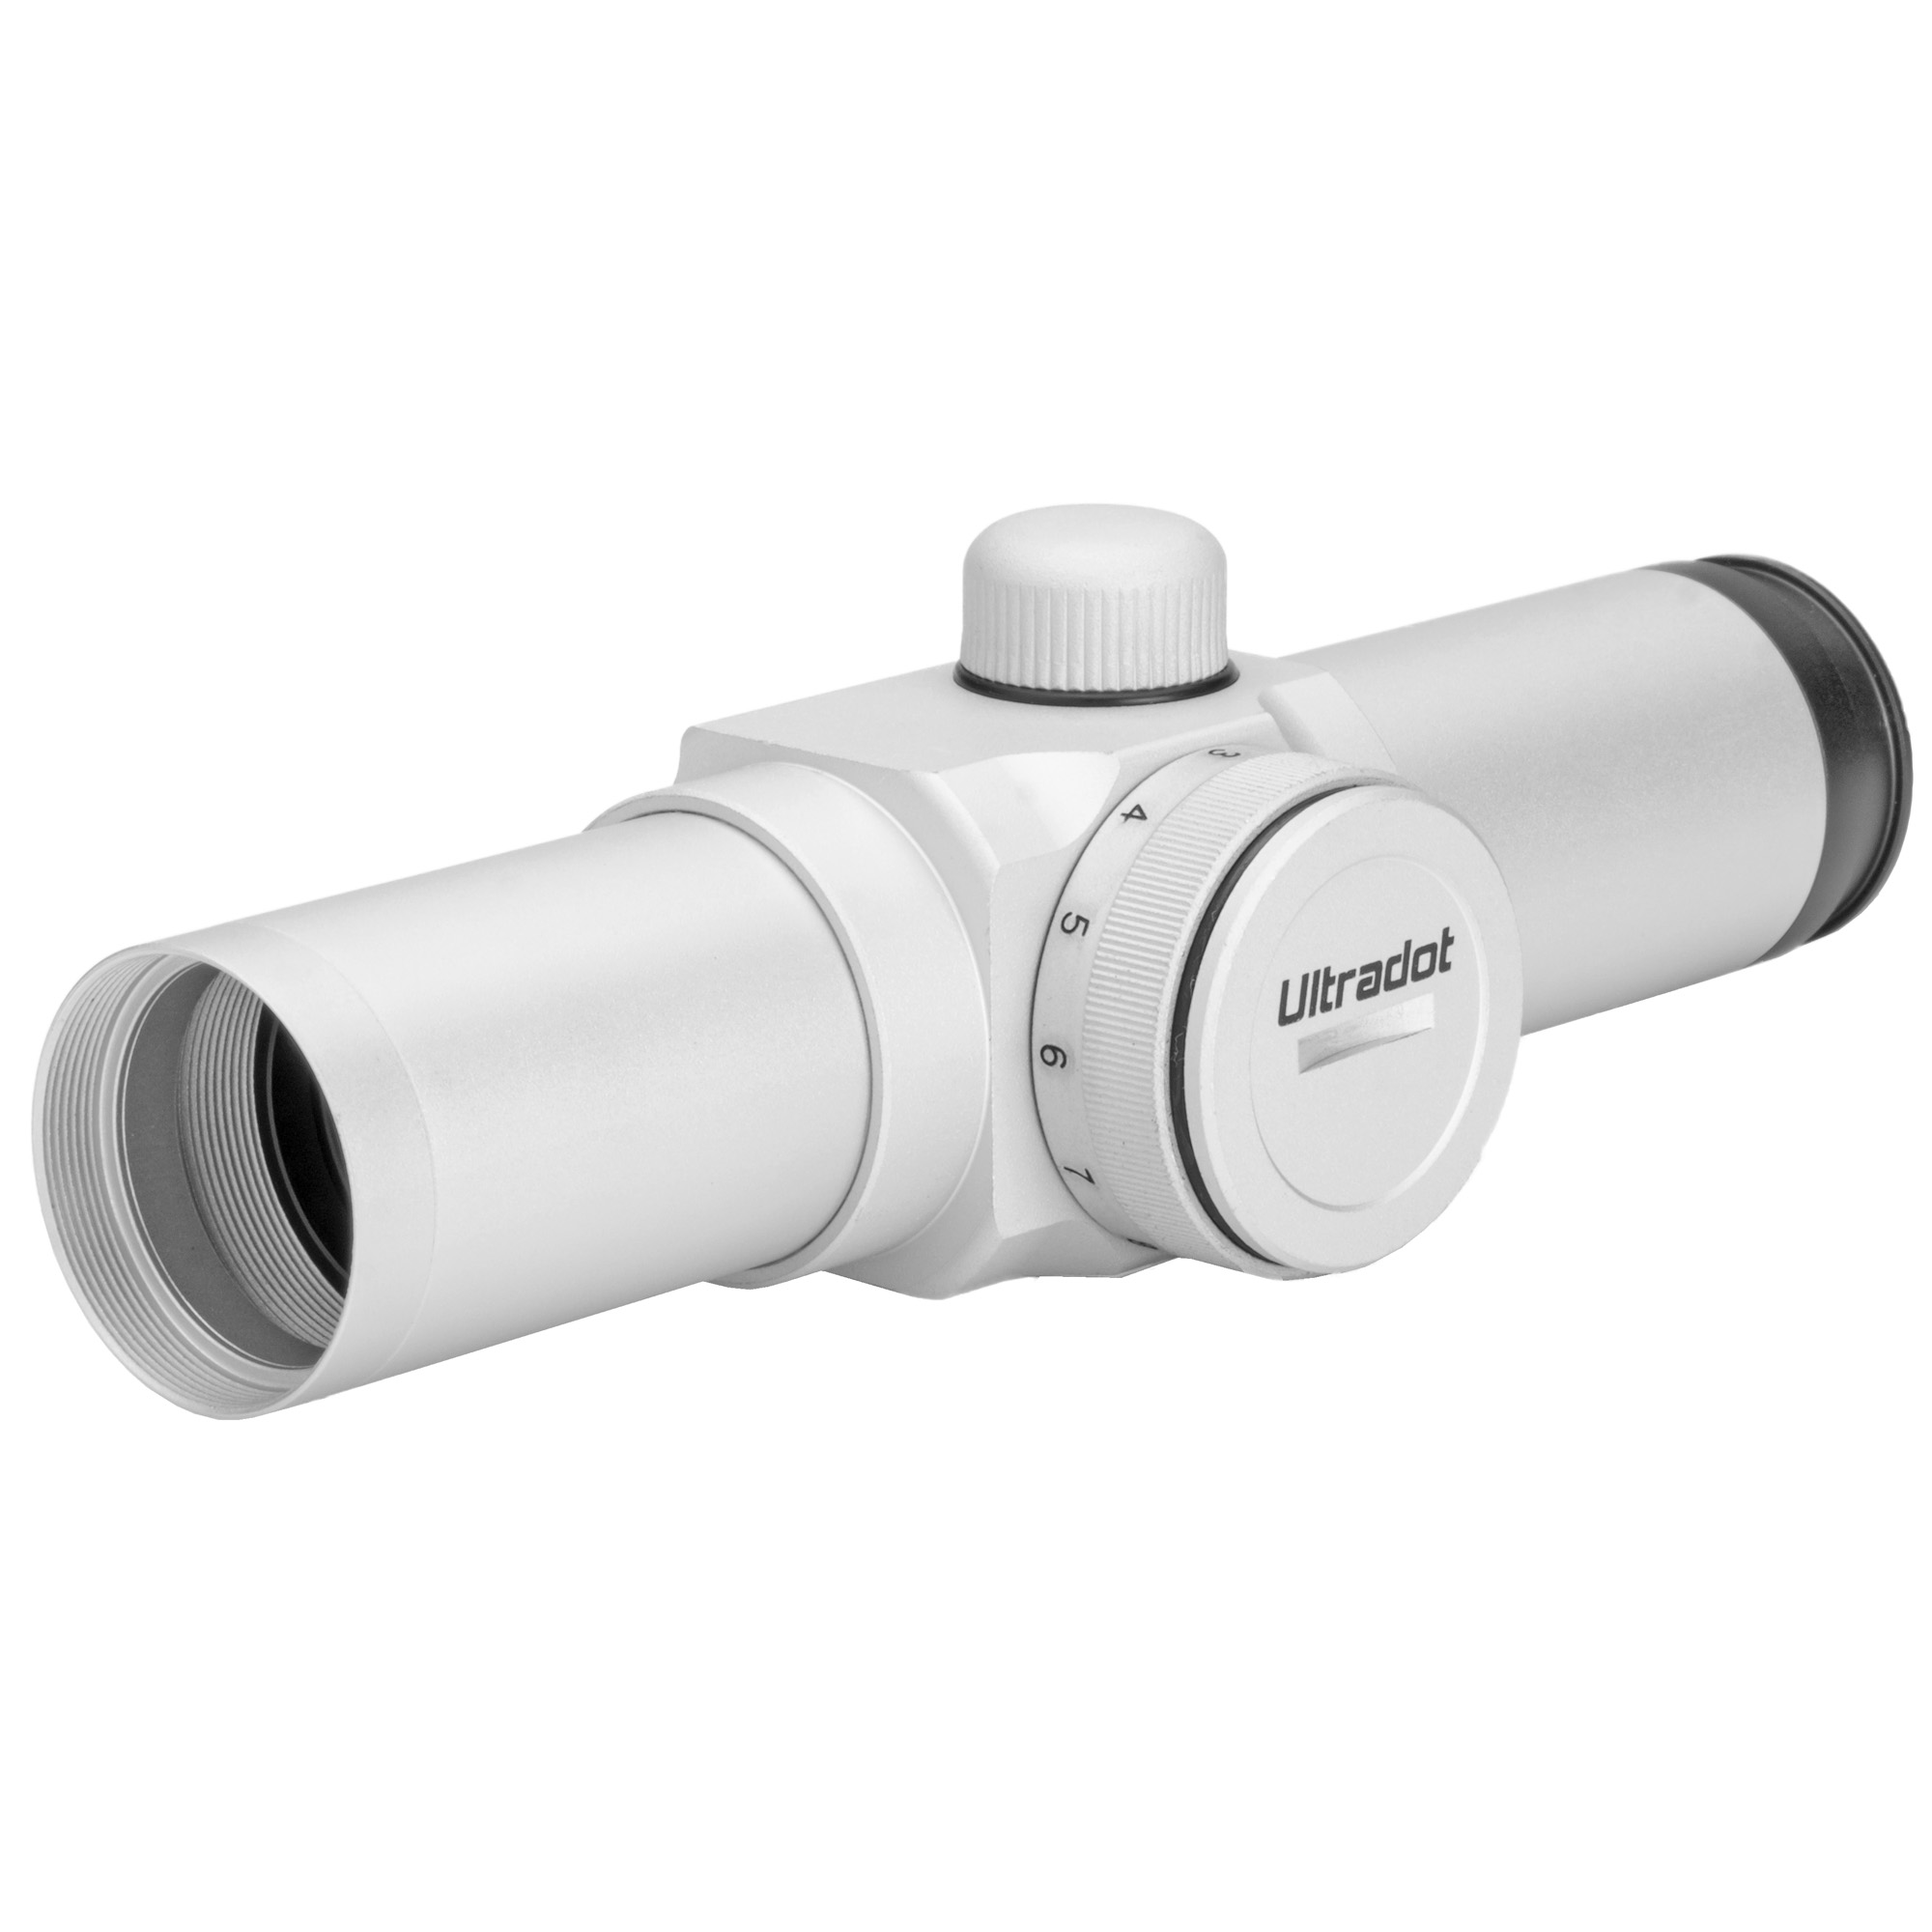 """The UltraDot is the most compact"""" lightweight and streamlined sight on the market. Only 5.1 inches long and weighs just 3.9 oz. Built with 25mm diameter tube. Click adjustable brightness control."""